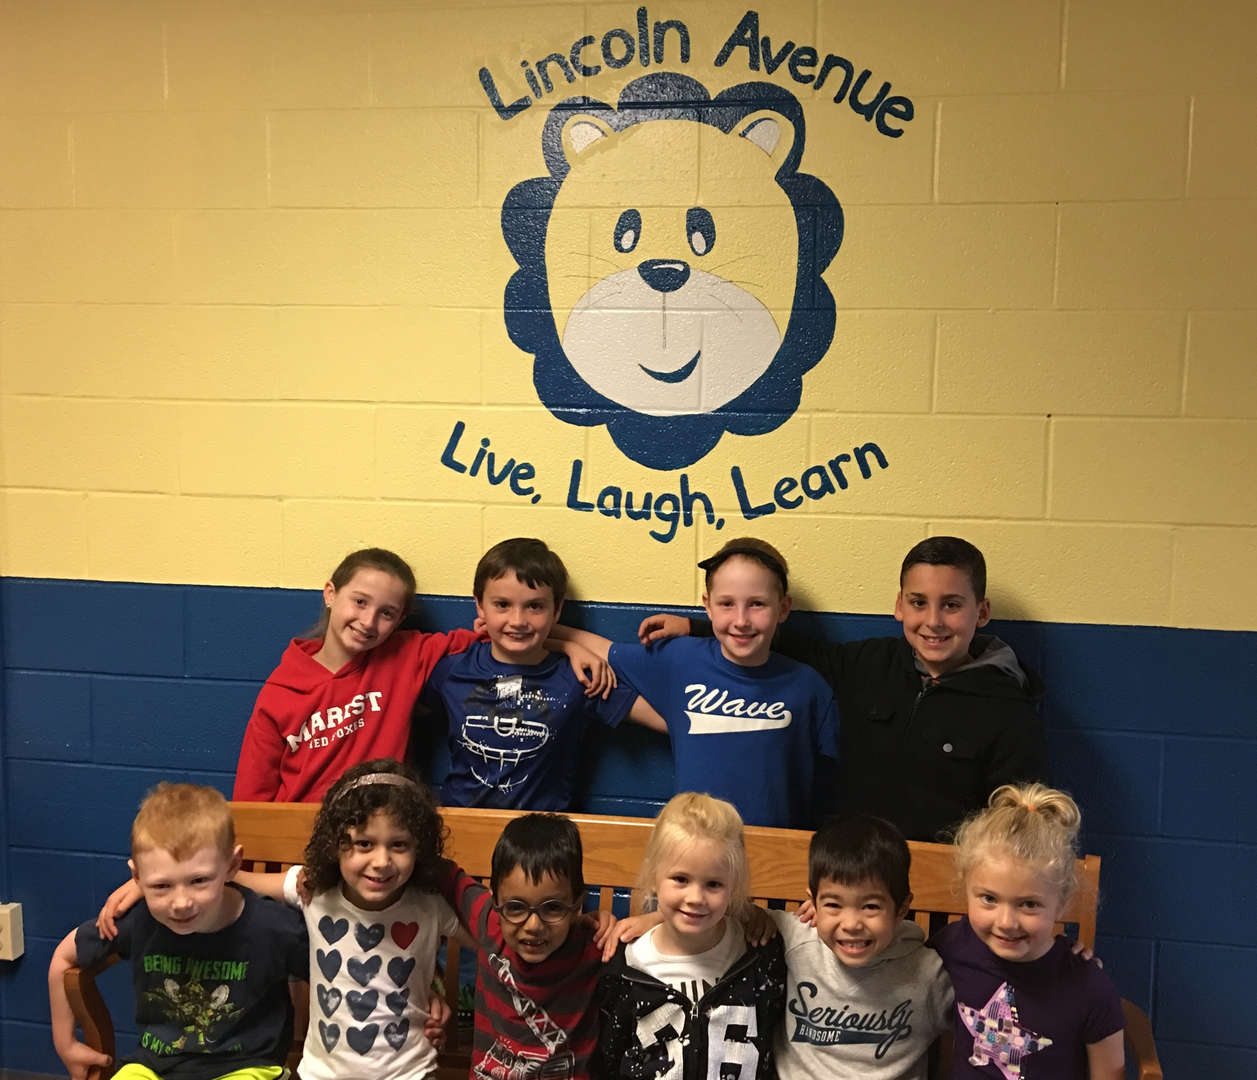 Lincoln Avenue students in the hallway